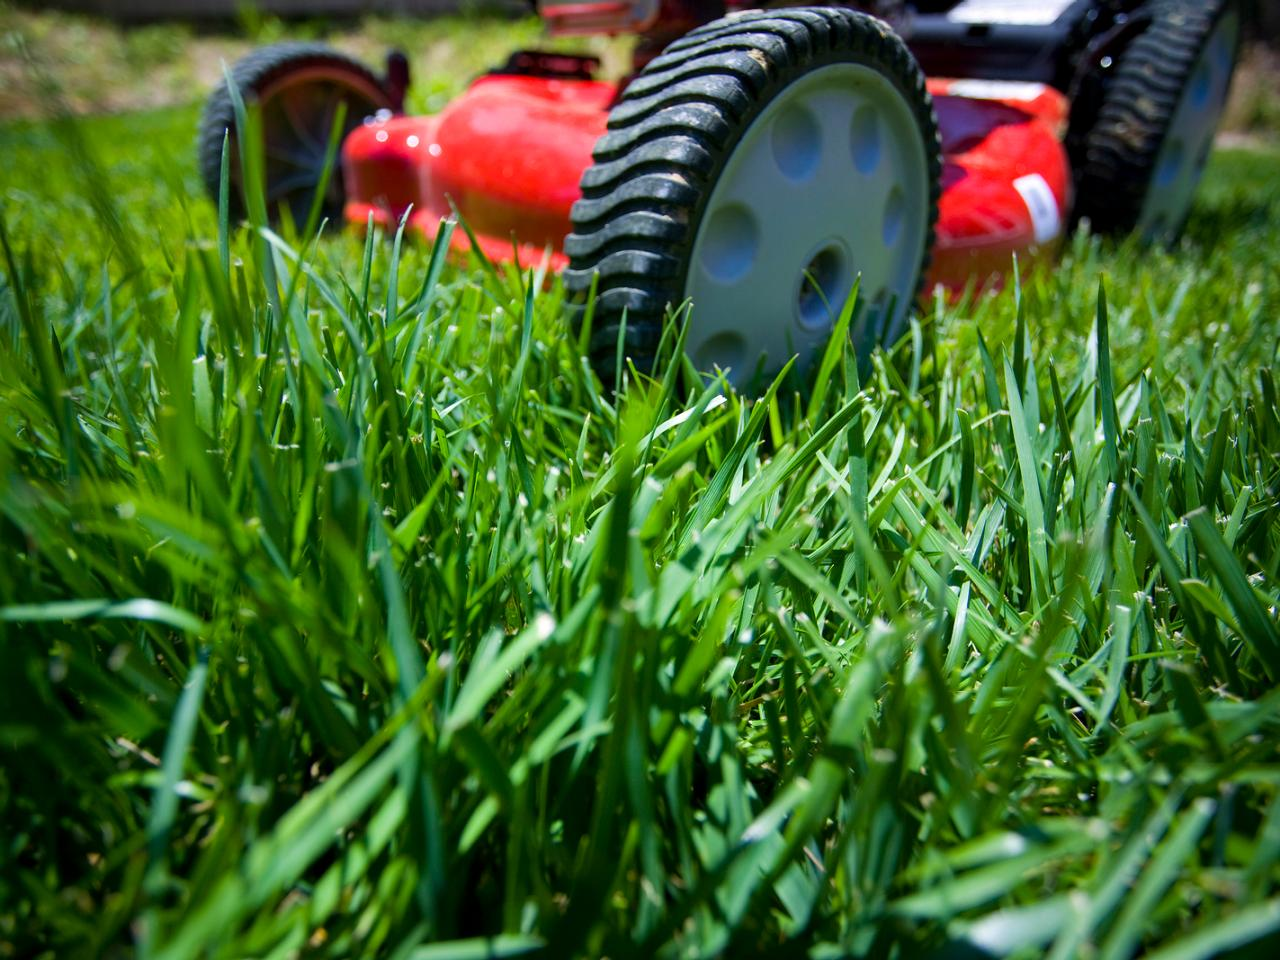 Lawn Mower-Grass